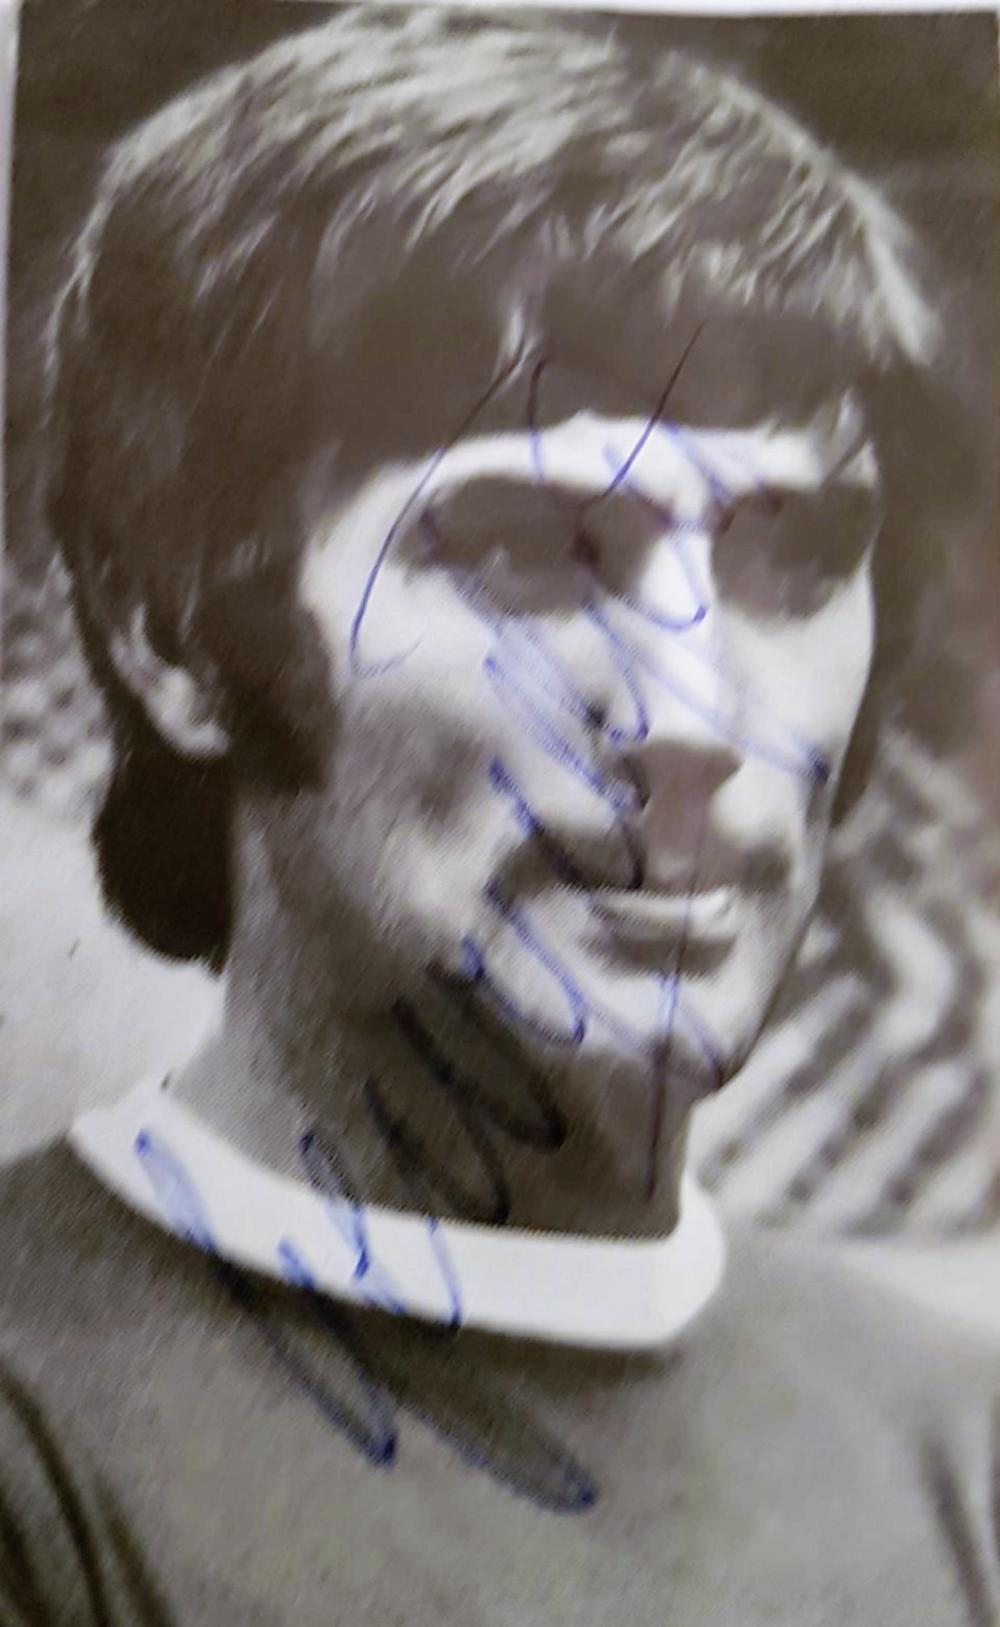 Lot 245: Small B/W newspaper picture of George Best (born on the 22 May 1946 – 25 November 2005) was a Northern Irish professional footballer who played as a winger for Manchester United and the Northern Ireland national team. In 1968, he won the